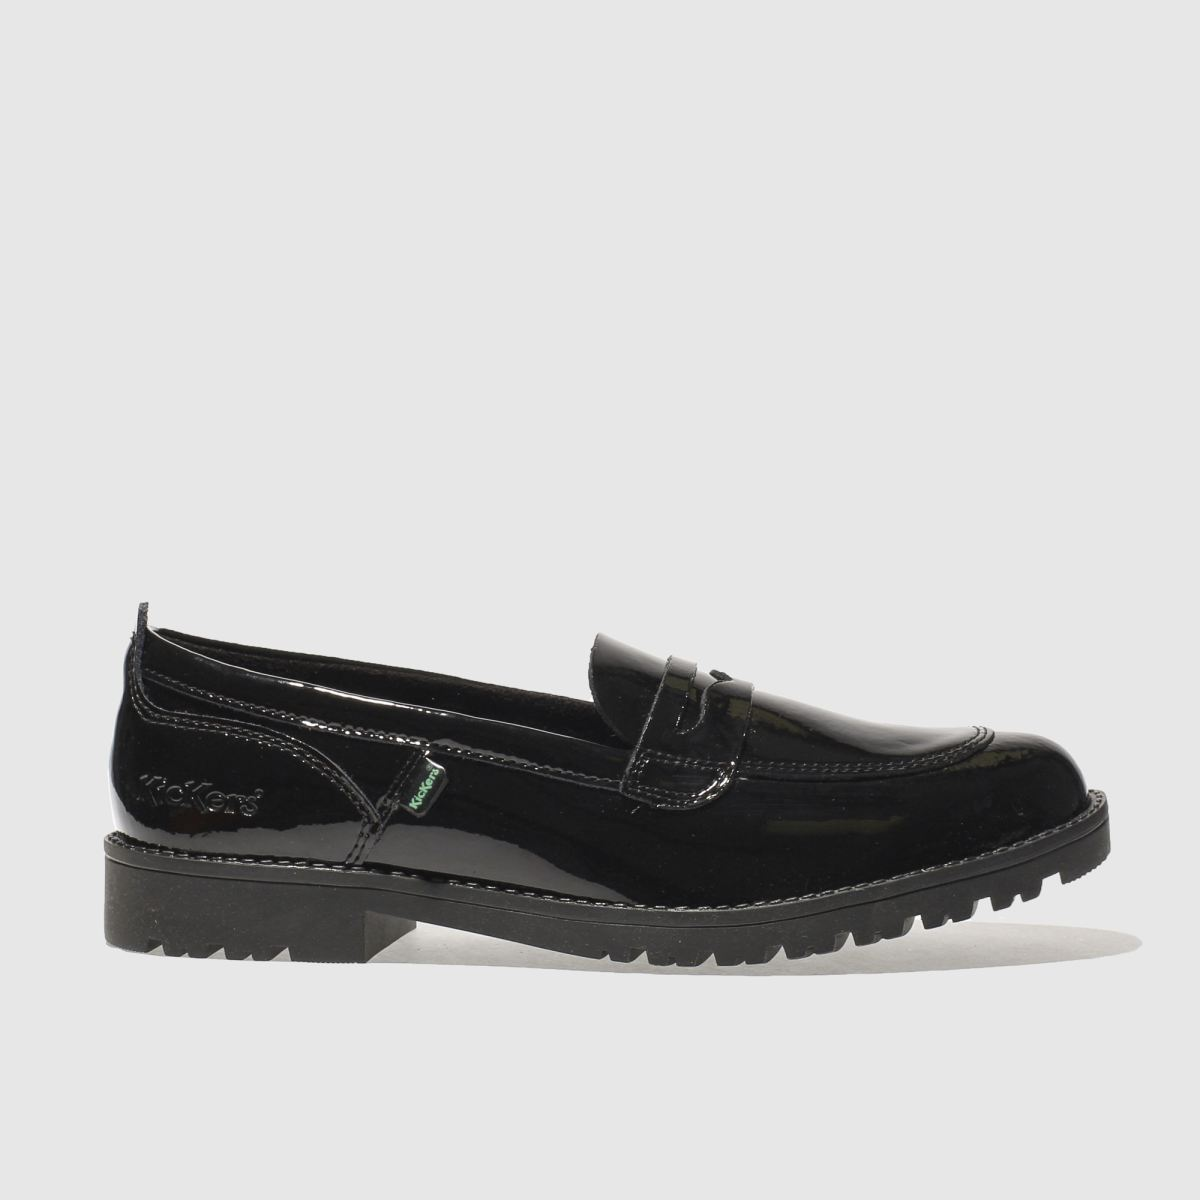 kickers black lachly loafer flat shoes